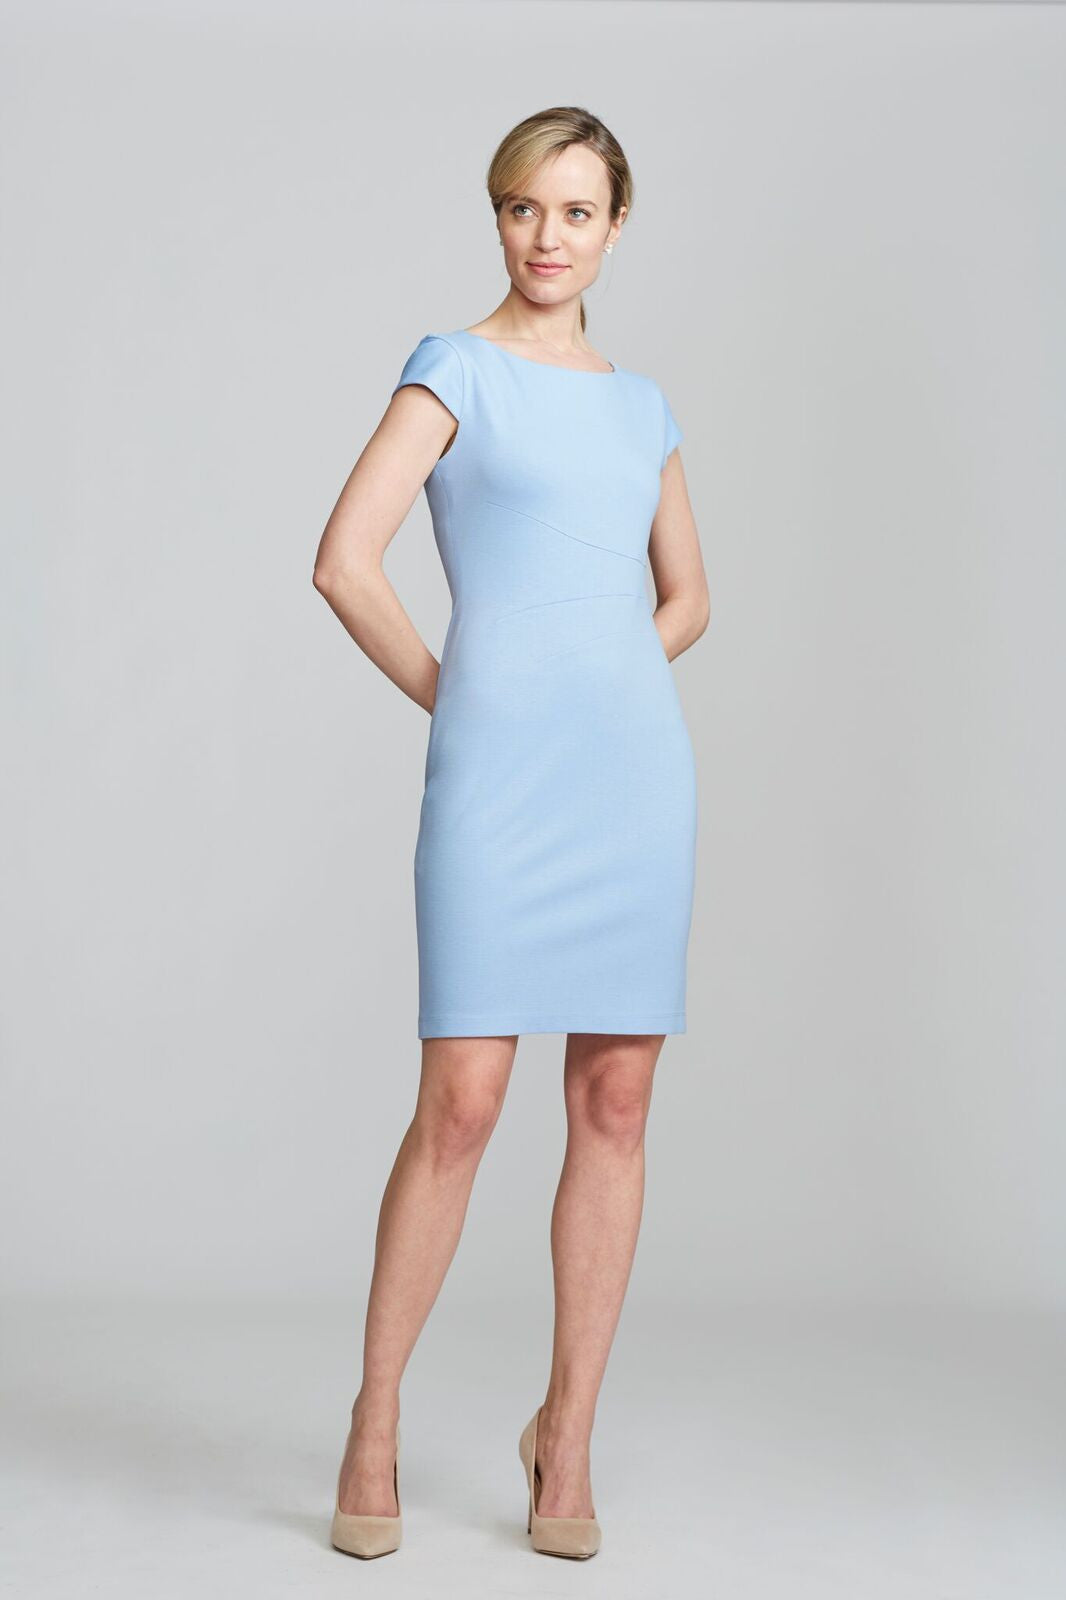 Verana Dress - Baby Blue